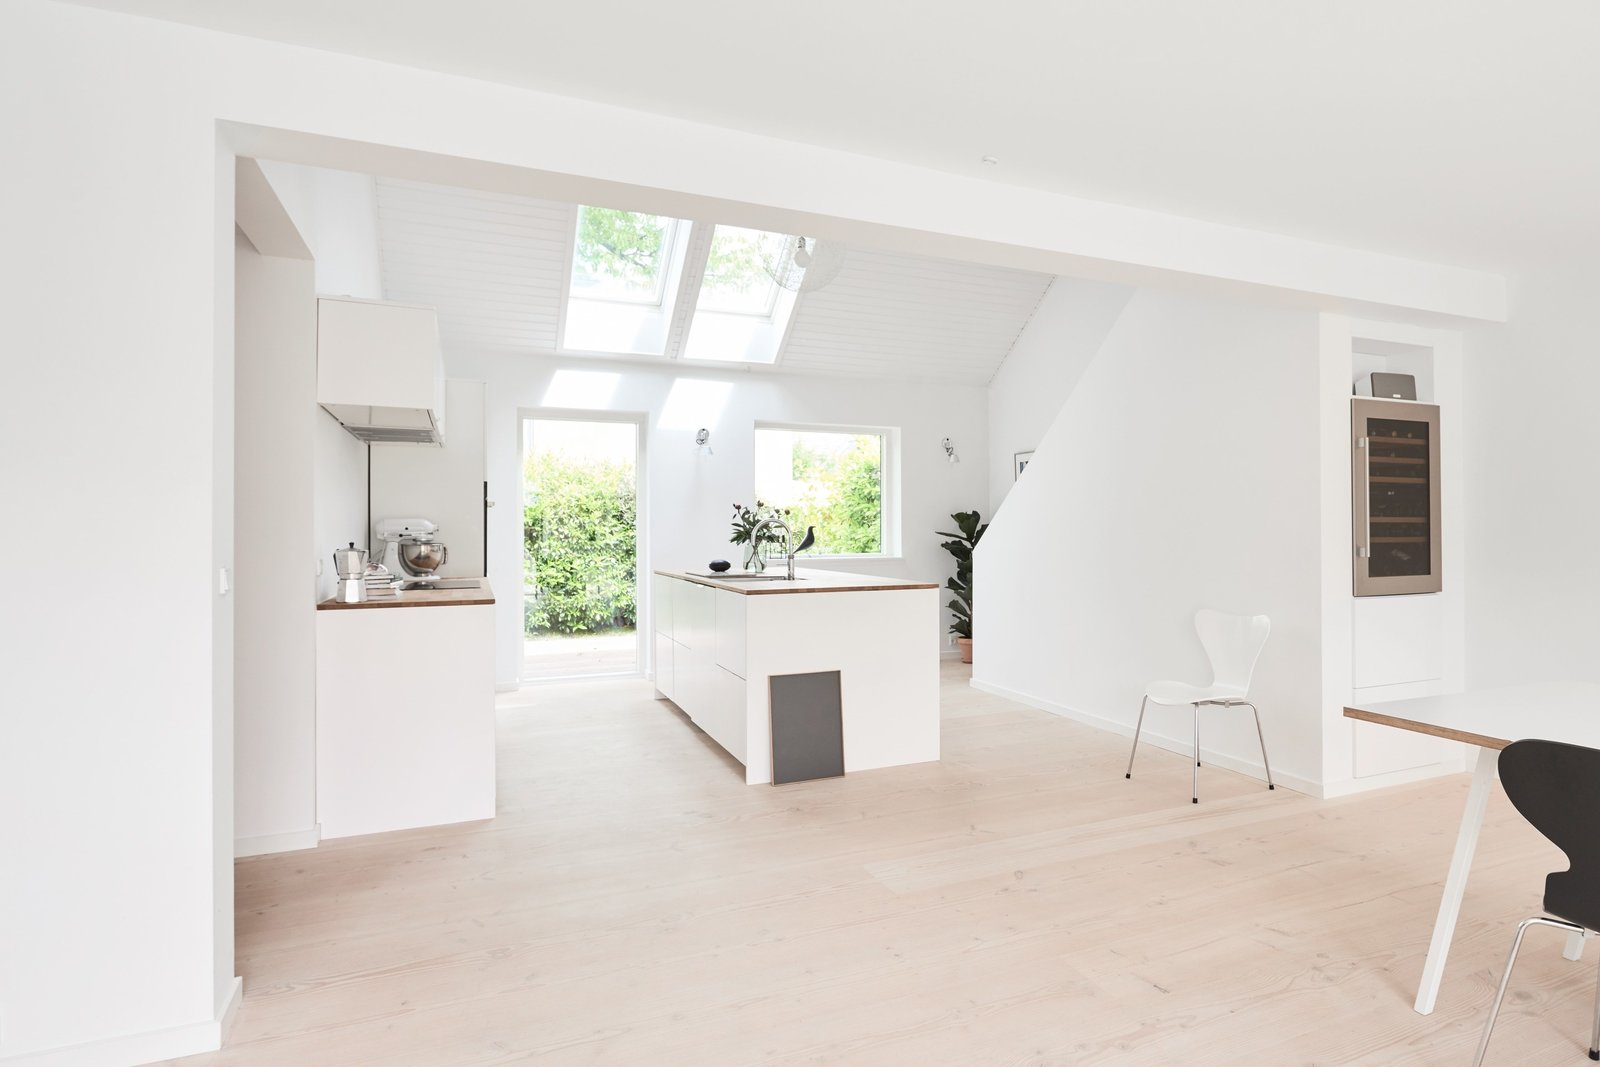 Henning Larsen Architects' design was used in spray painted white with painted metal bands that have been painted the same color and oak counter tops for this bright and airy contemporary home in Charlottenlund, Denmark.